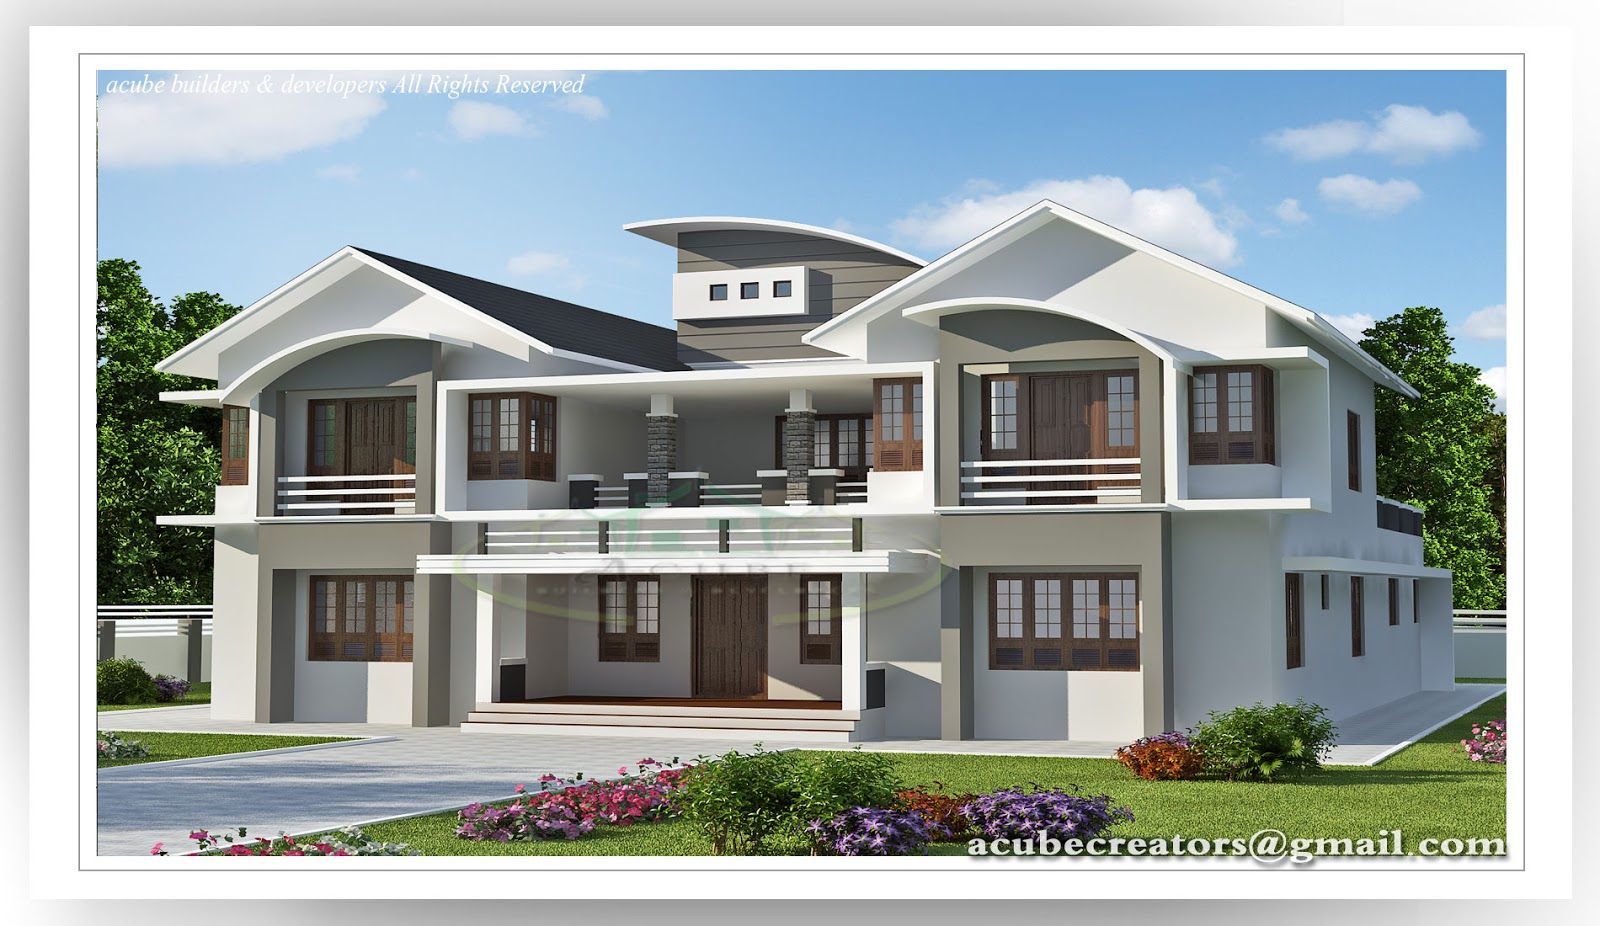 6 bedroom luxury villa design 5091 plan 149 for 6 bed house plans